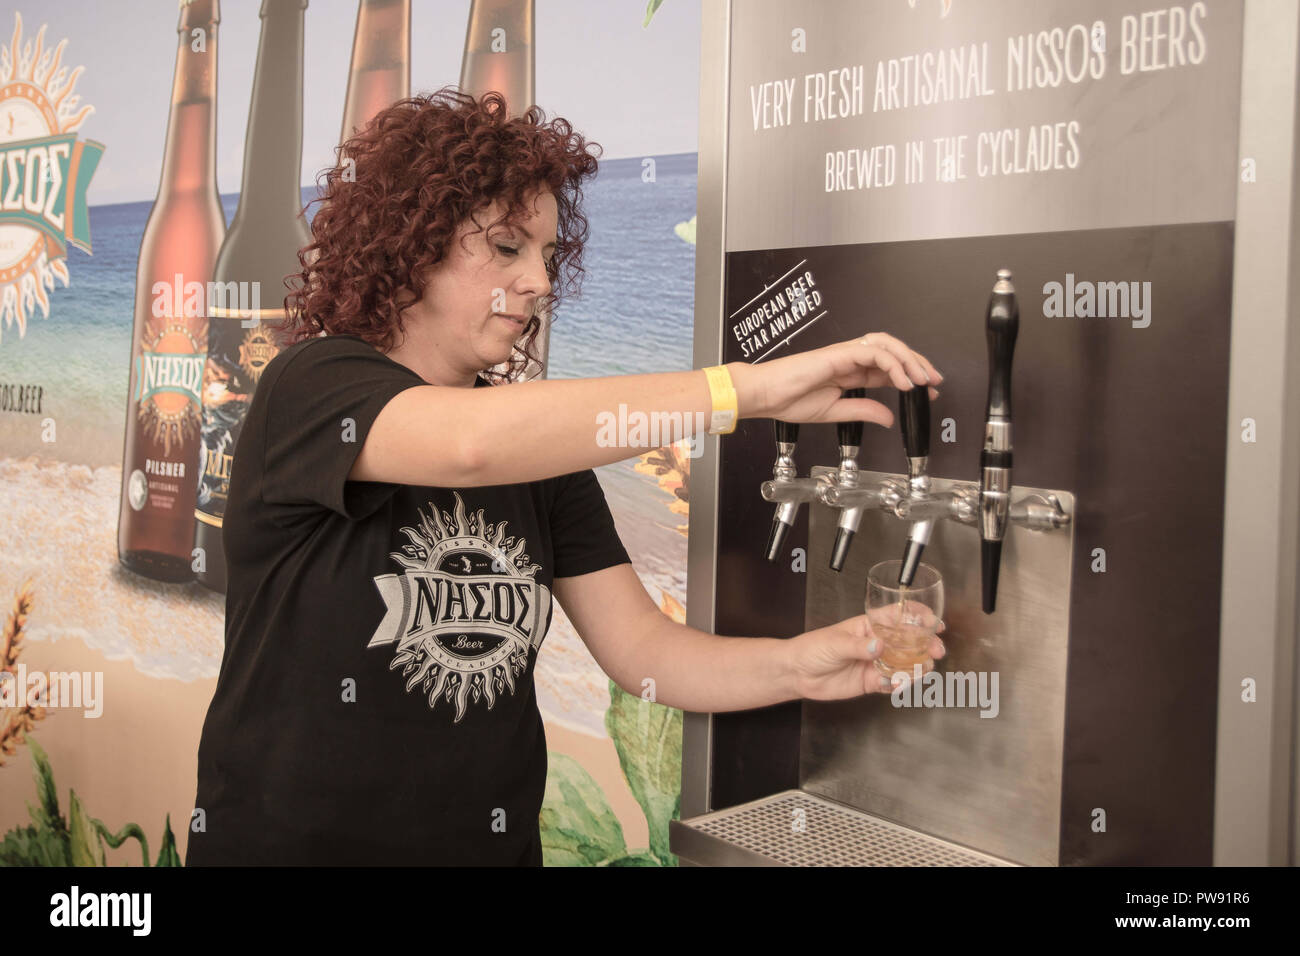 Athens, Greece. 13th Oct, 2018. A woman seen pouring beer into a glass during the exhibition.The 5th Zythognosia Exhibition, people get a chance during the exhibition to taste multiple brews and premium beers from different brands and companies like Levante for Zante Lager, Asylum for Asylum saison, Mikonu for Mikonu Pale Ale, Deals for Fischer, Samichlaus and Cava di patsi for Flaros Session Ale in Zappeion Megaron in Athens. Credit: Nikolas Joao Kokovlis/SOPA Images/ZUMA Wire/Alamy Live News - Stock Image